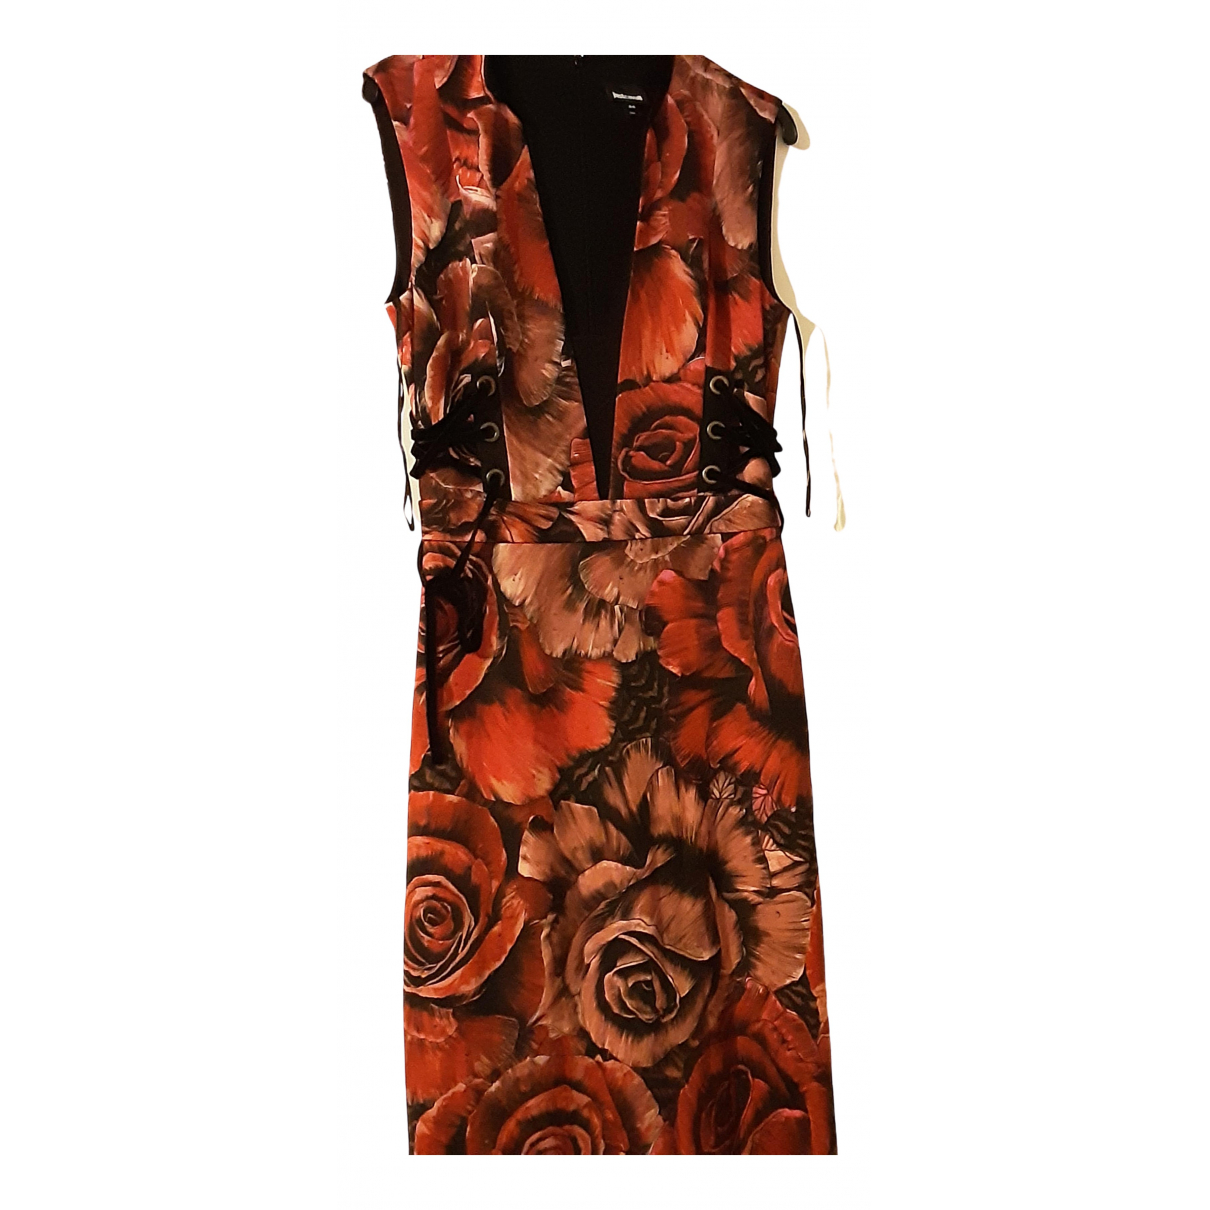 Just Cavalli \N Red Cotton - elasthane dress for Women 44 IT